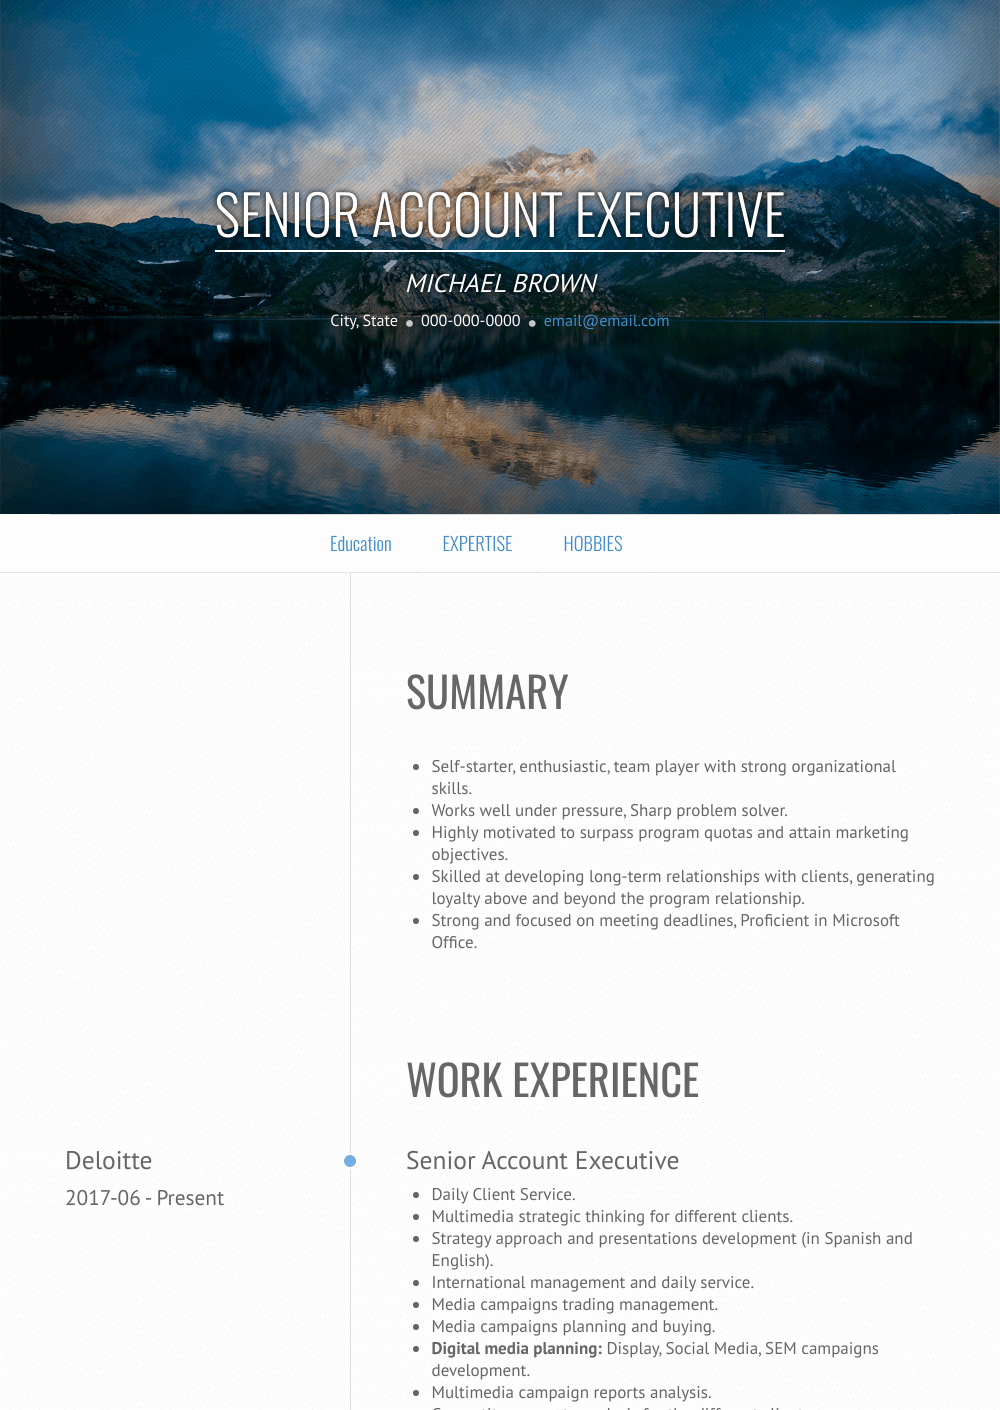 Accounts Executive - Resume Samples and Templates | VisualCV